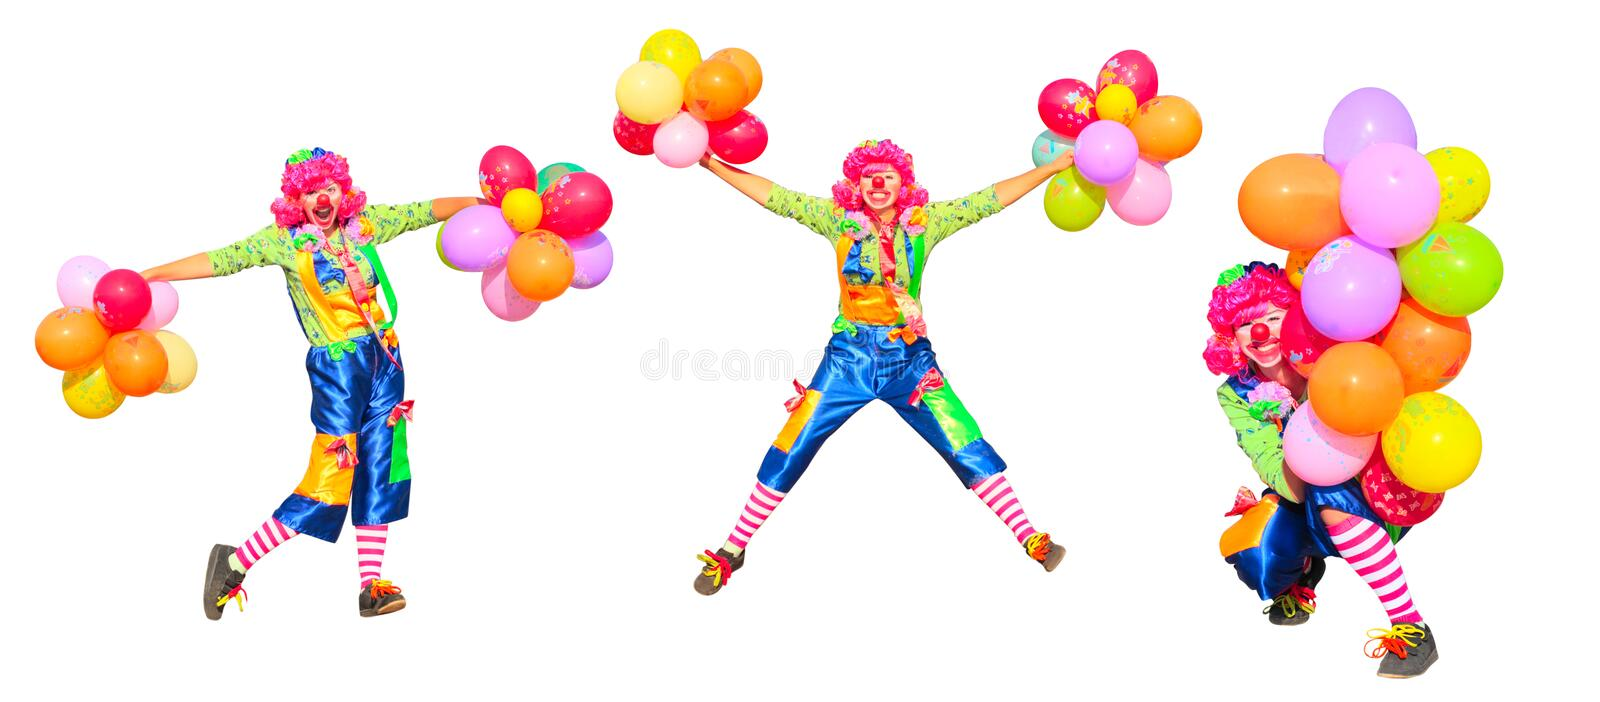 Clown isolated on white stock photos